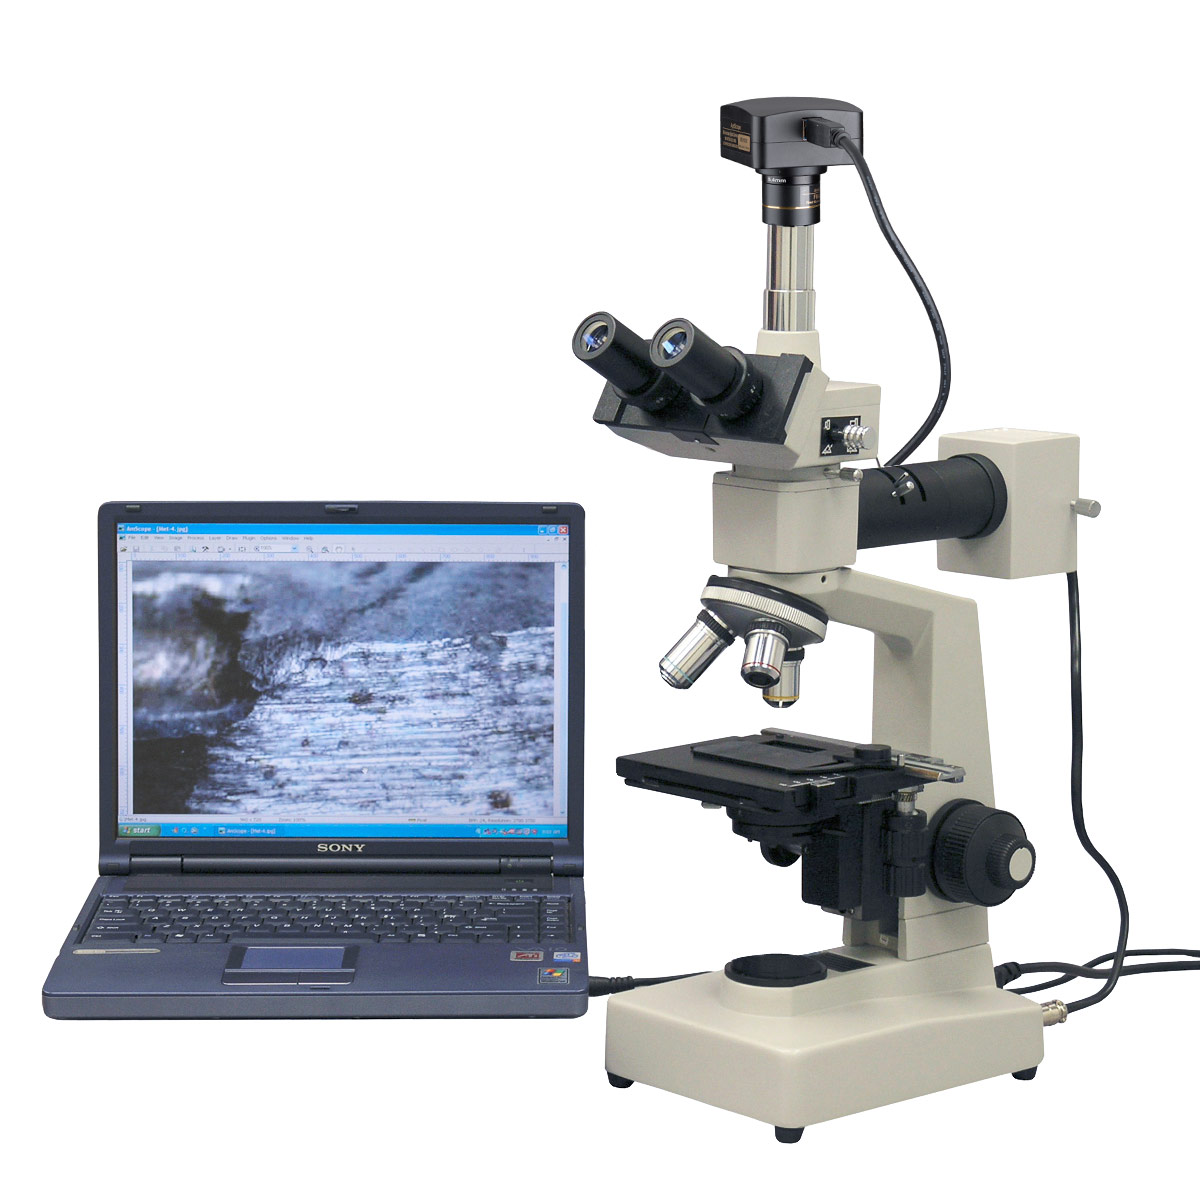 AmScope 40X-1000X Epi-illumination Metallurgical Microscope + 14MP USB 3.0 Digital Camera